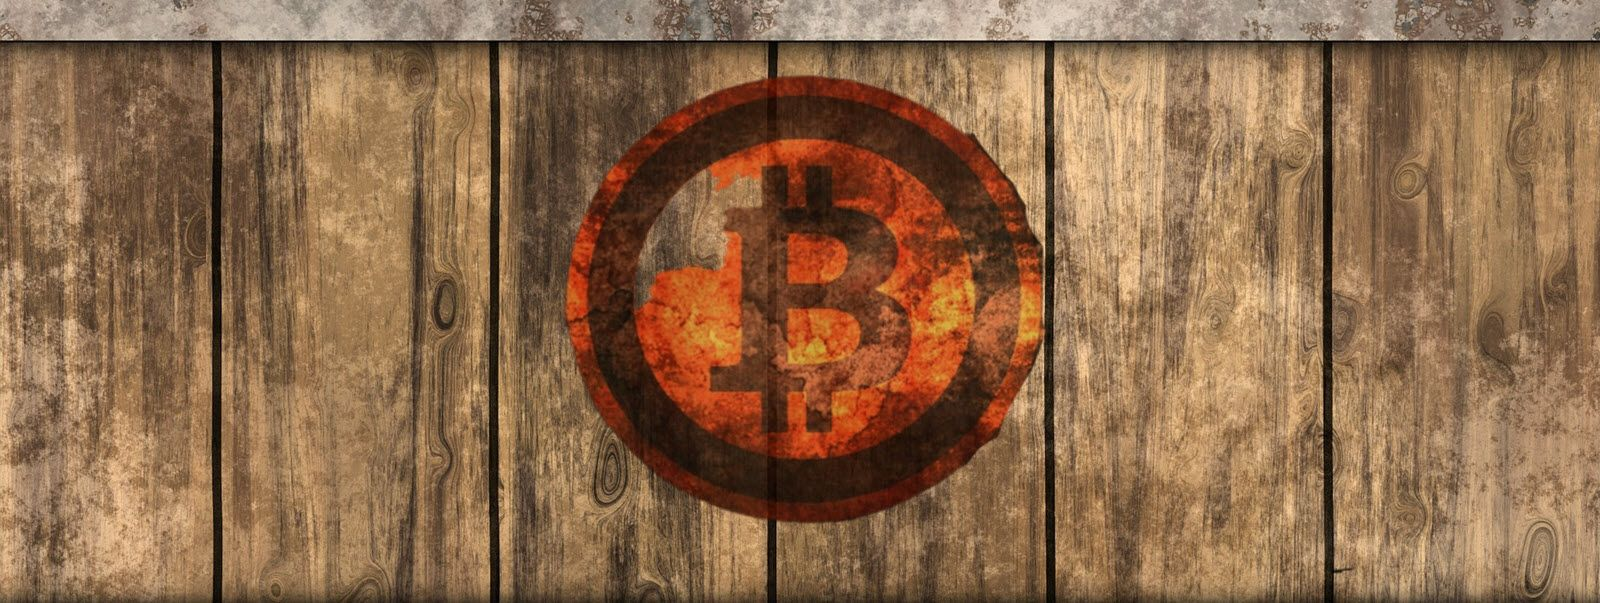 /why-bitcoin-boomed-and-dipped-and-whats-coming-next-c62o37kt feature image